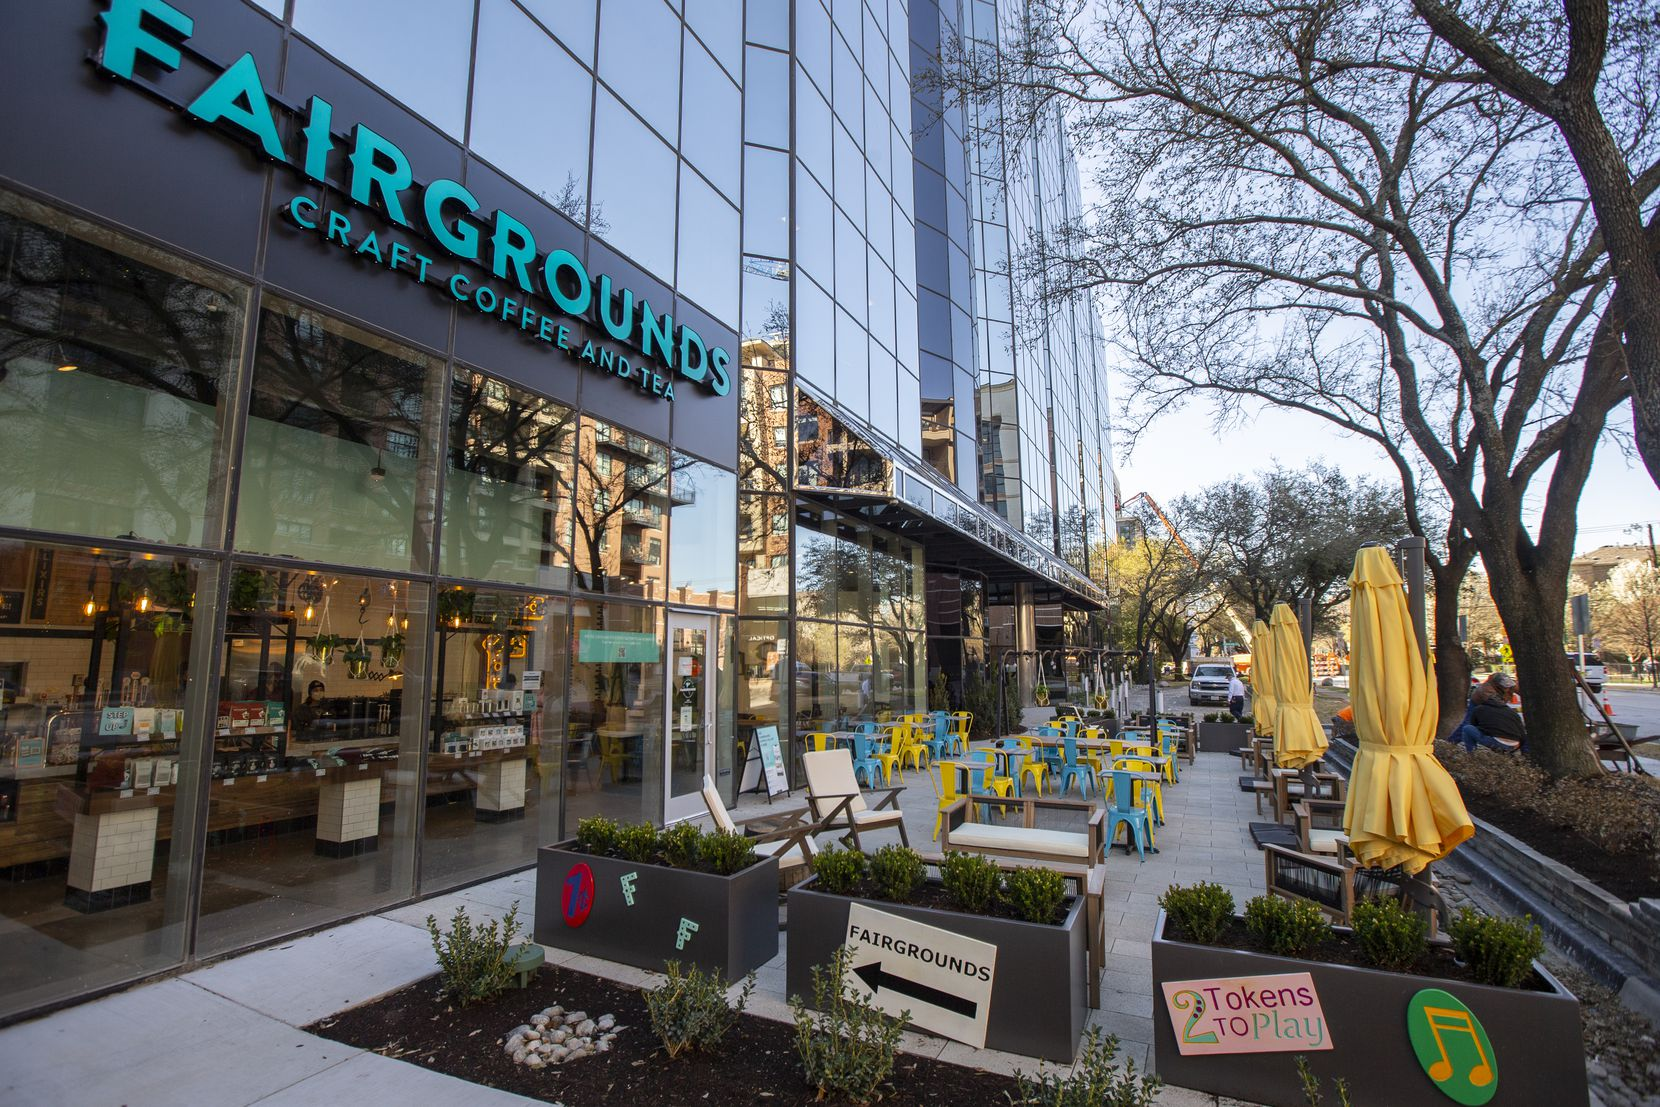 Fairgrounds Coffee & Tea started in Chicago. Its first shop in Dallas opened March 24, 2021. More are expected to open in Dallas, says CEO Michael Schultz.